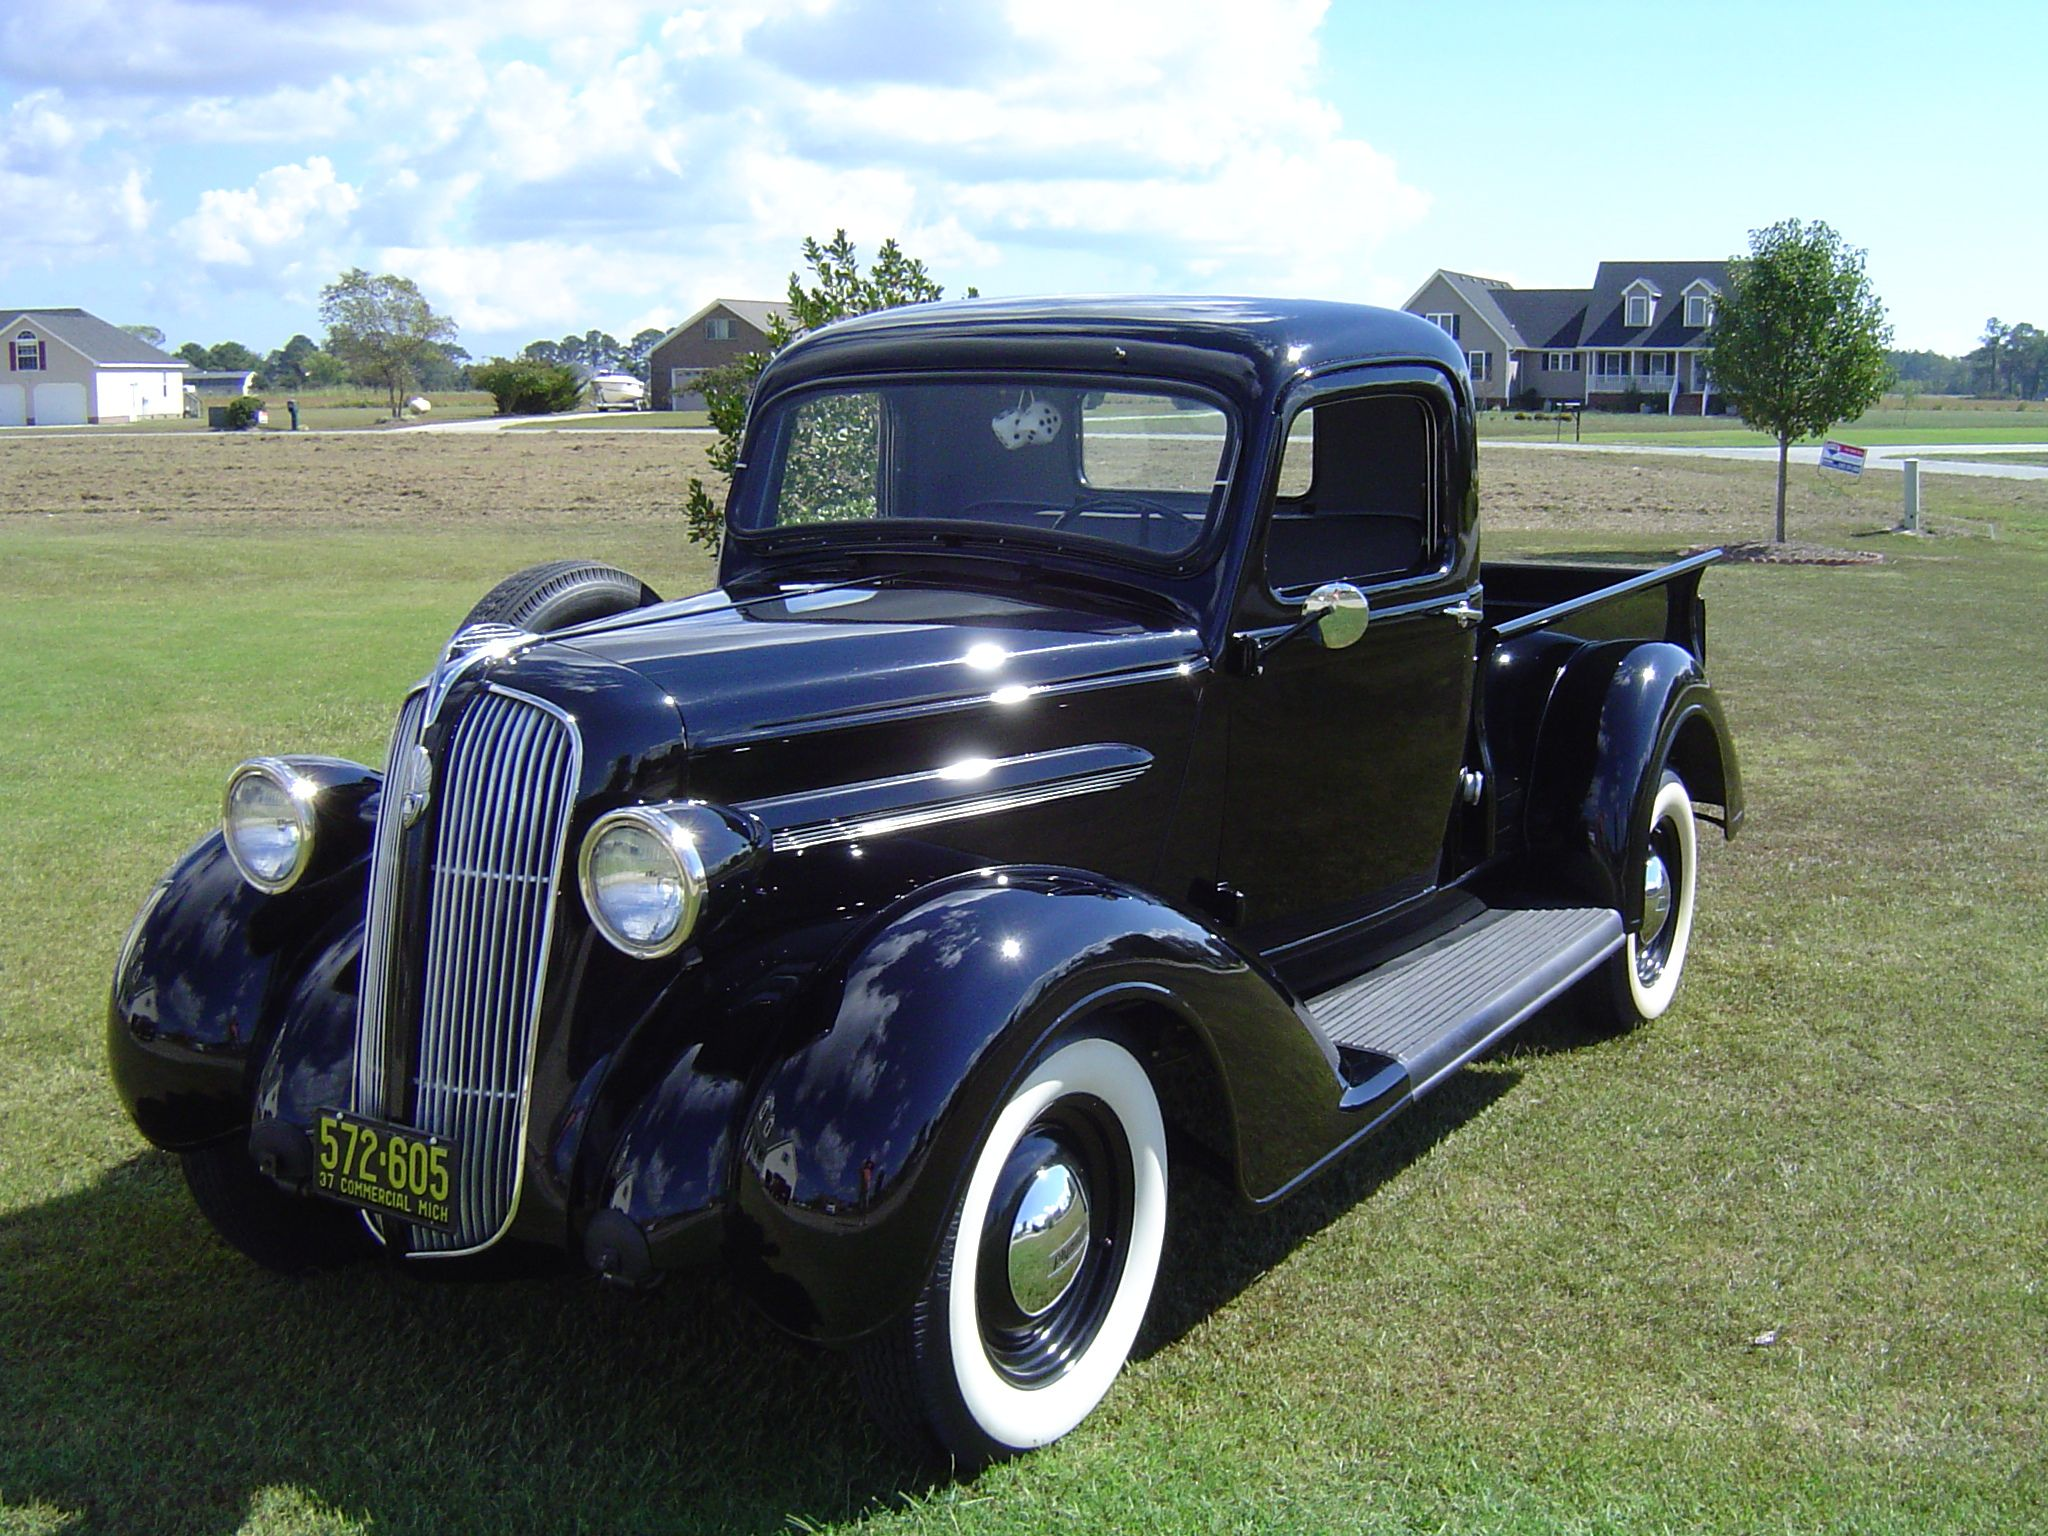 1937 Plymouth Truck | Plymouth Trucks | Pinterest | Plymouth, Cars ...